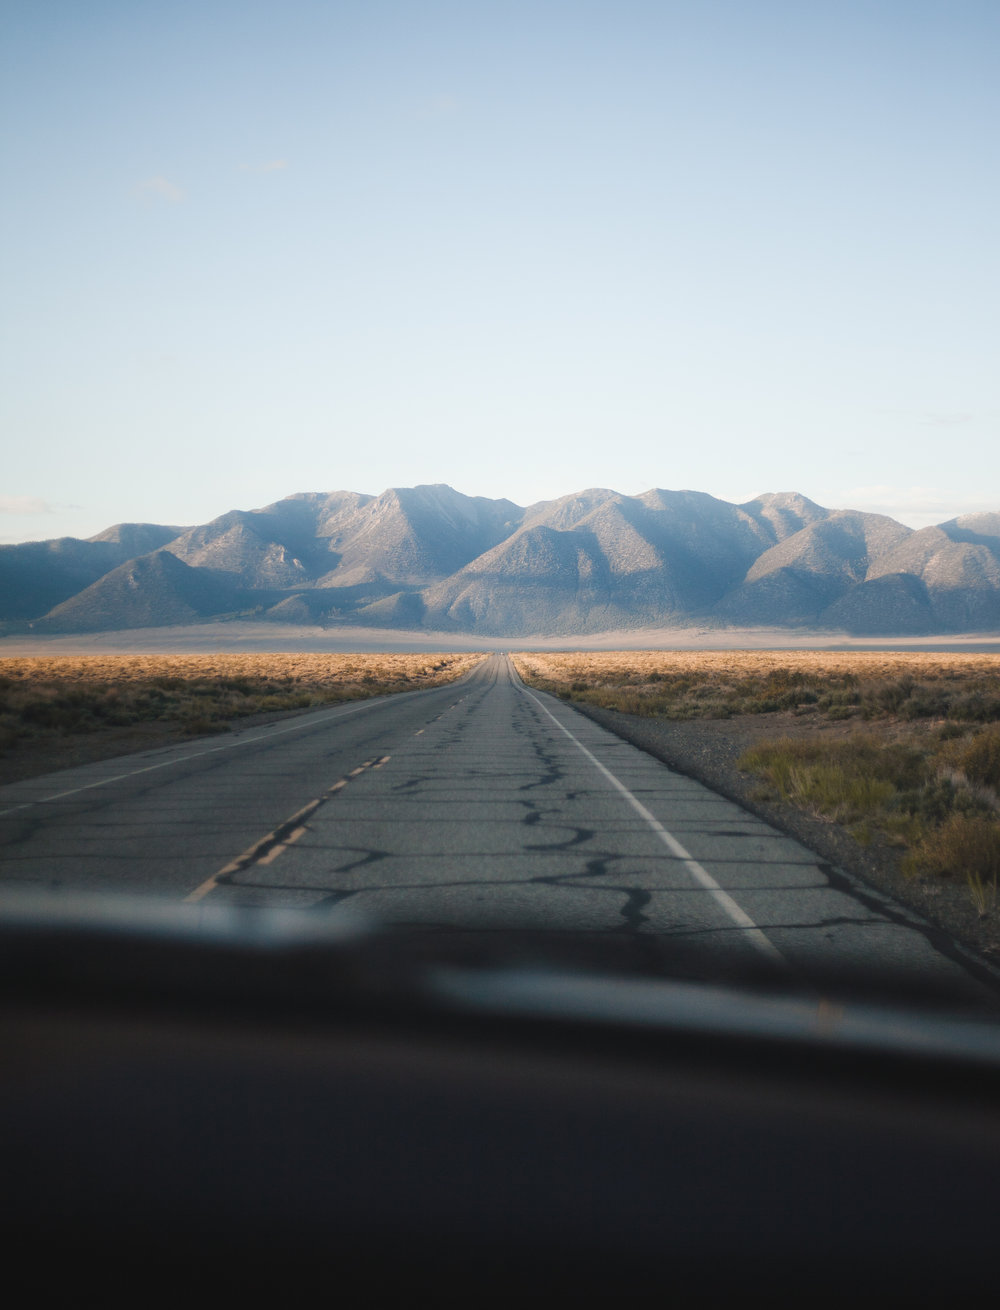 THE ROAD TO WHITMORE HOTSPRINGS